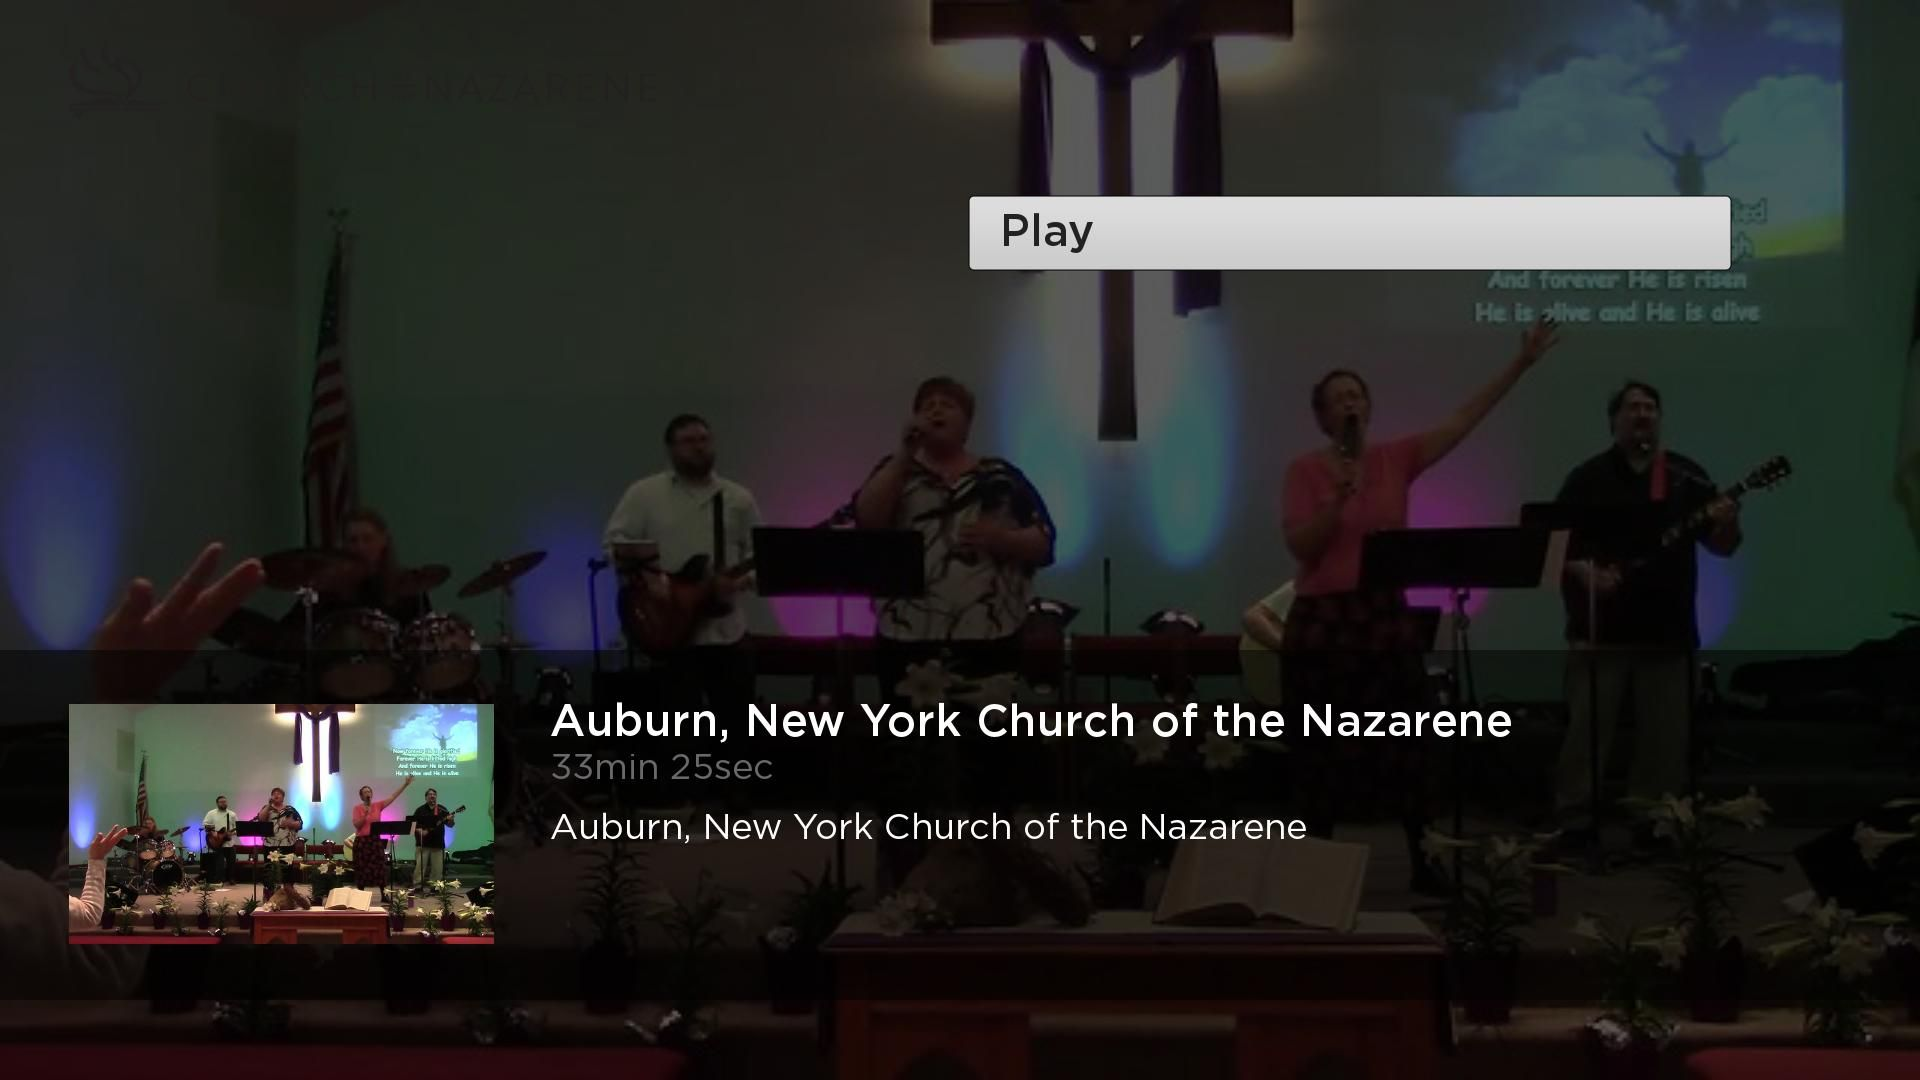 Churches of the Nazarene Screenshot 002